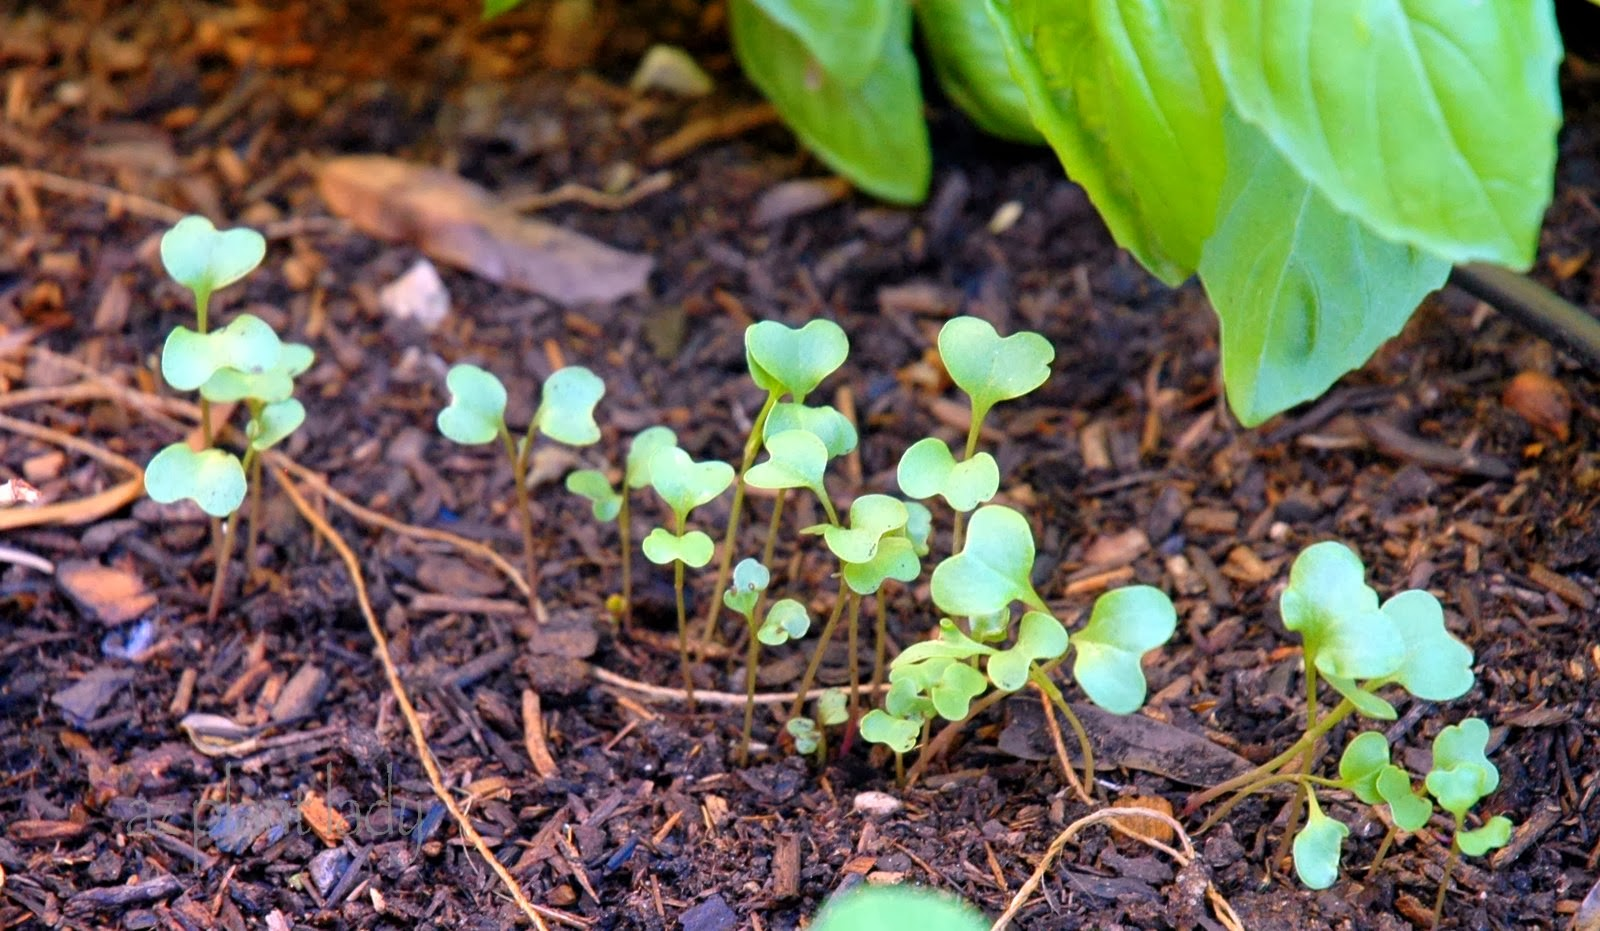 This Is The Only Photo I Have Of Radishes In My Garden. I Must Remember To  Take One When They Are A Bit More Developed.